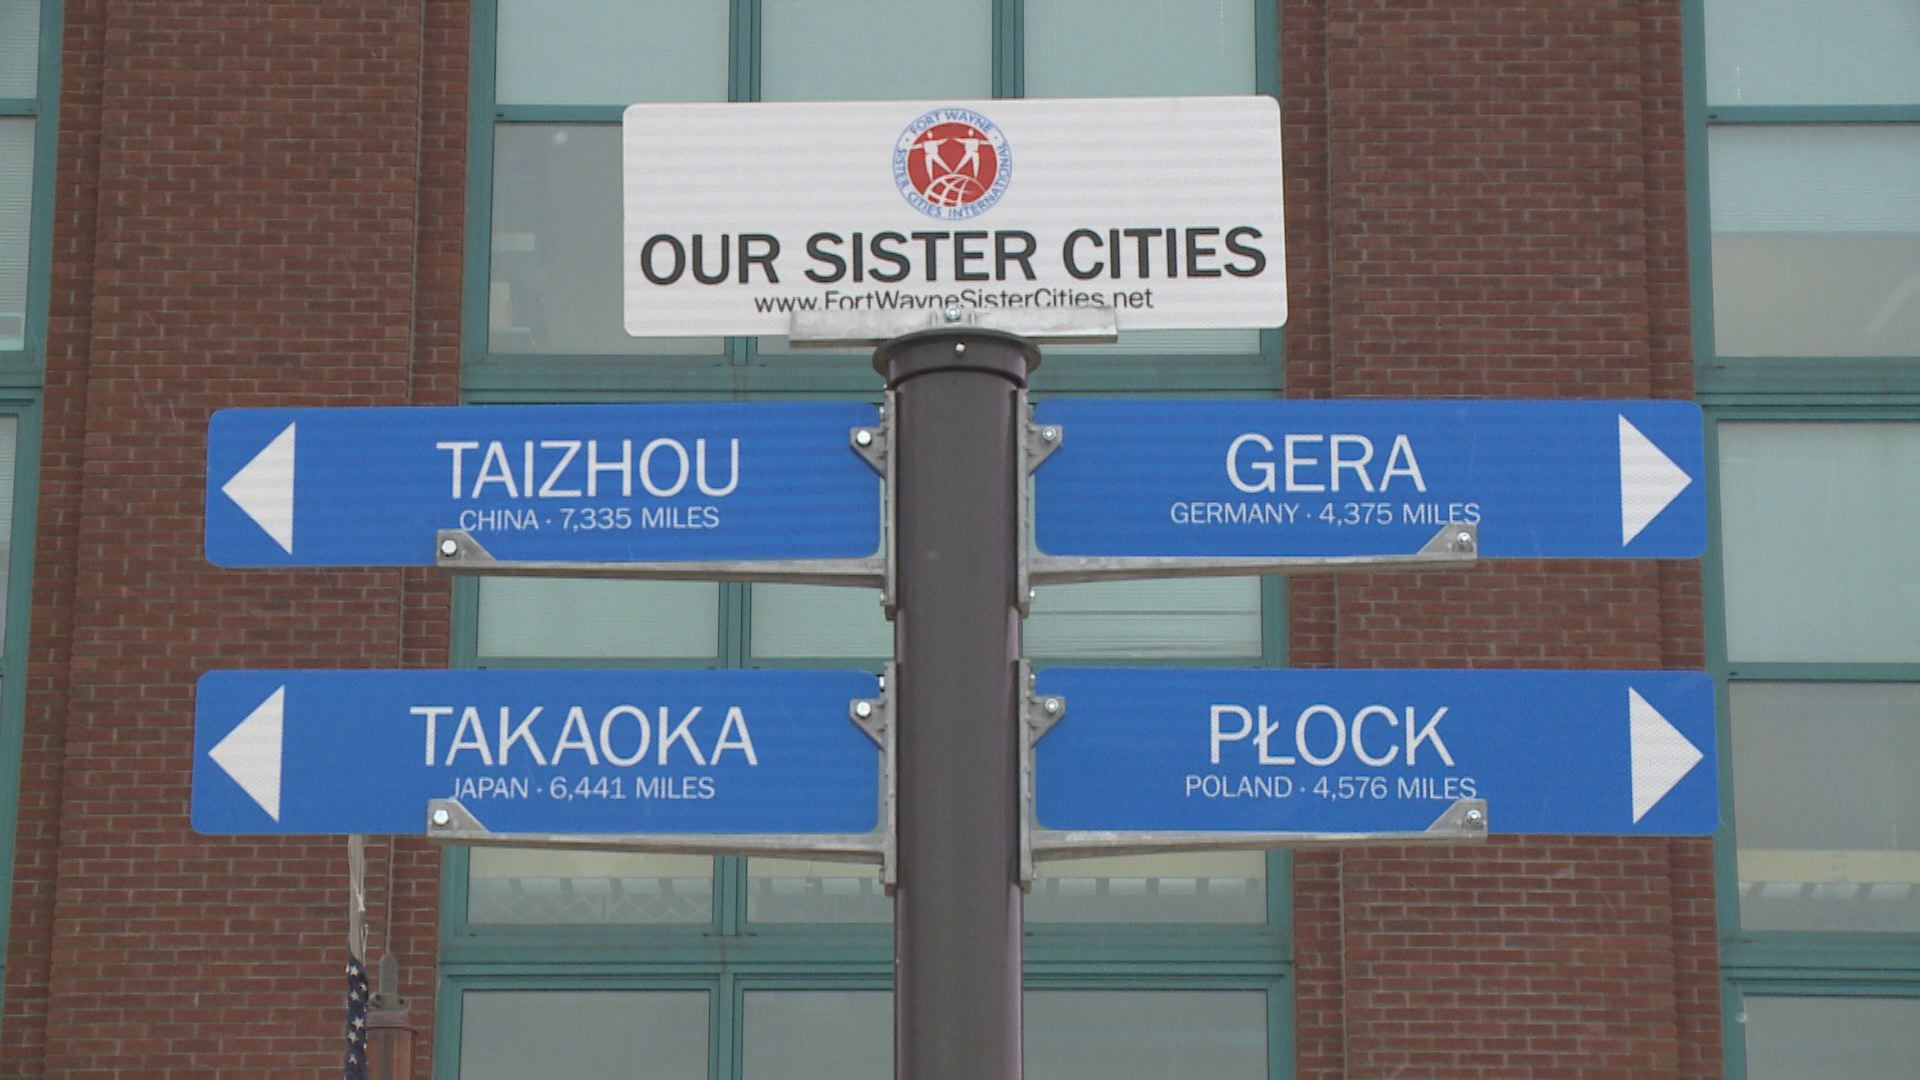 SISTER CITIES_163291